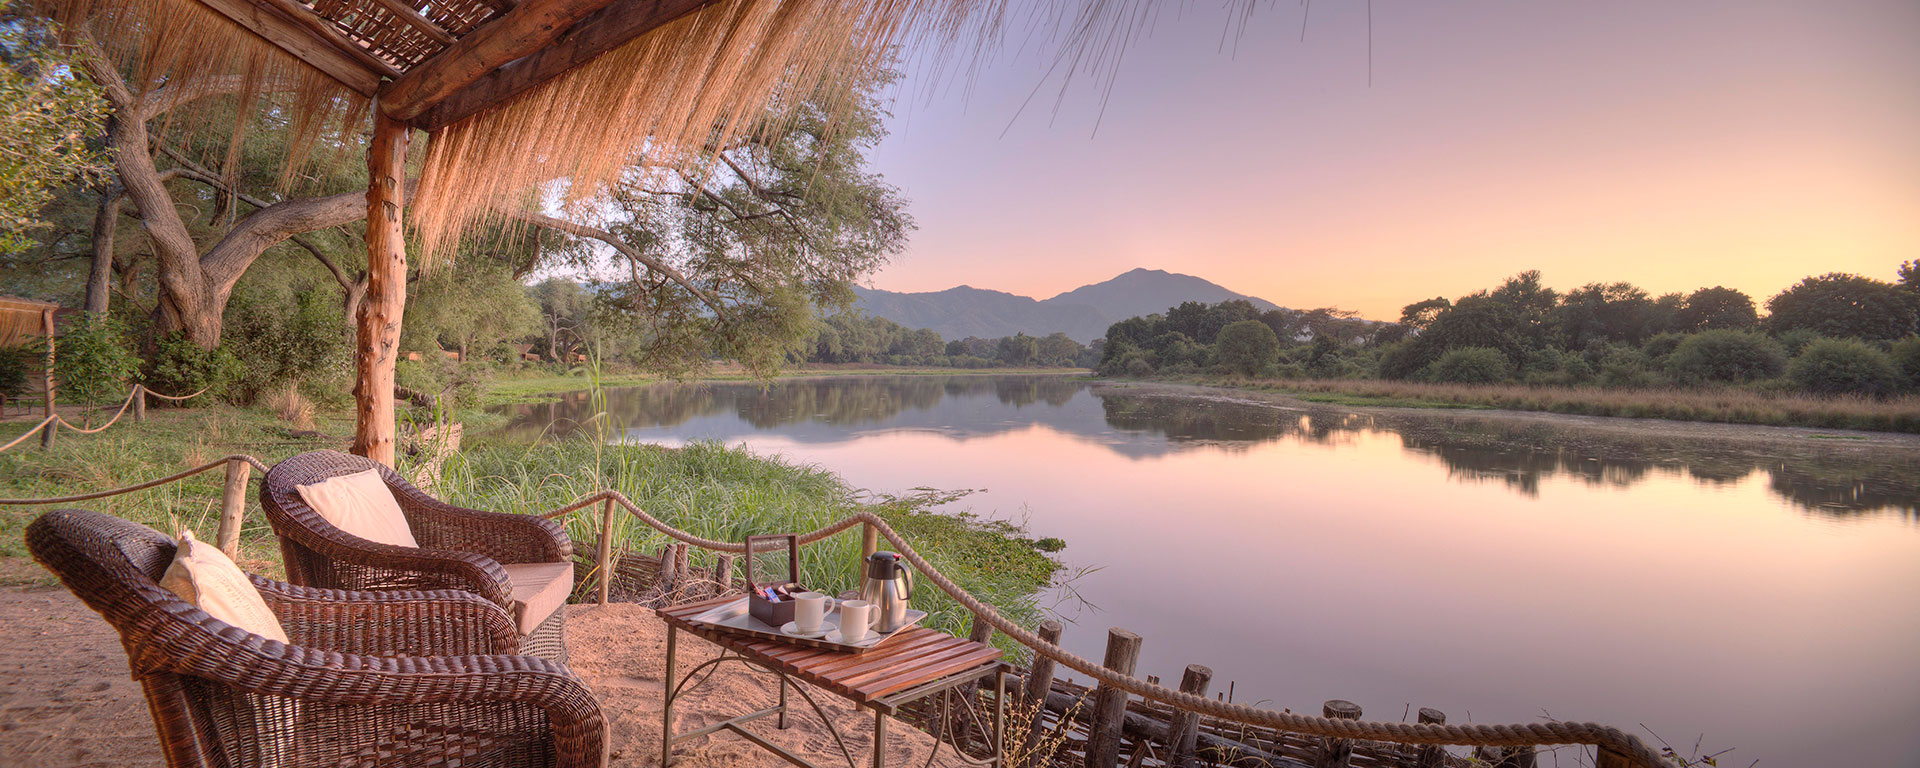 Savour the exquisite view over the river with a fresh cup of coffee or tea at Chongwe.